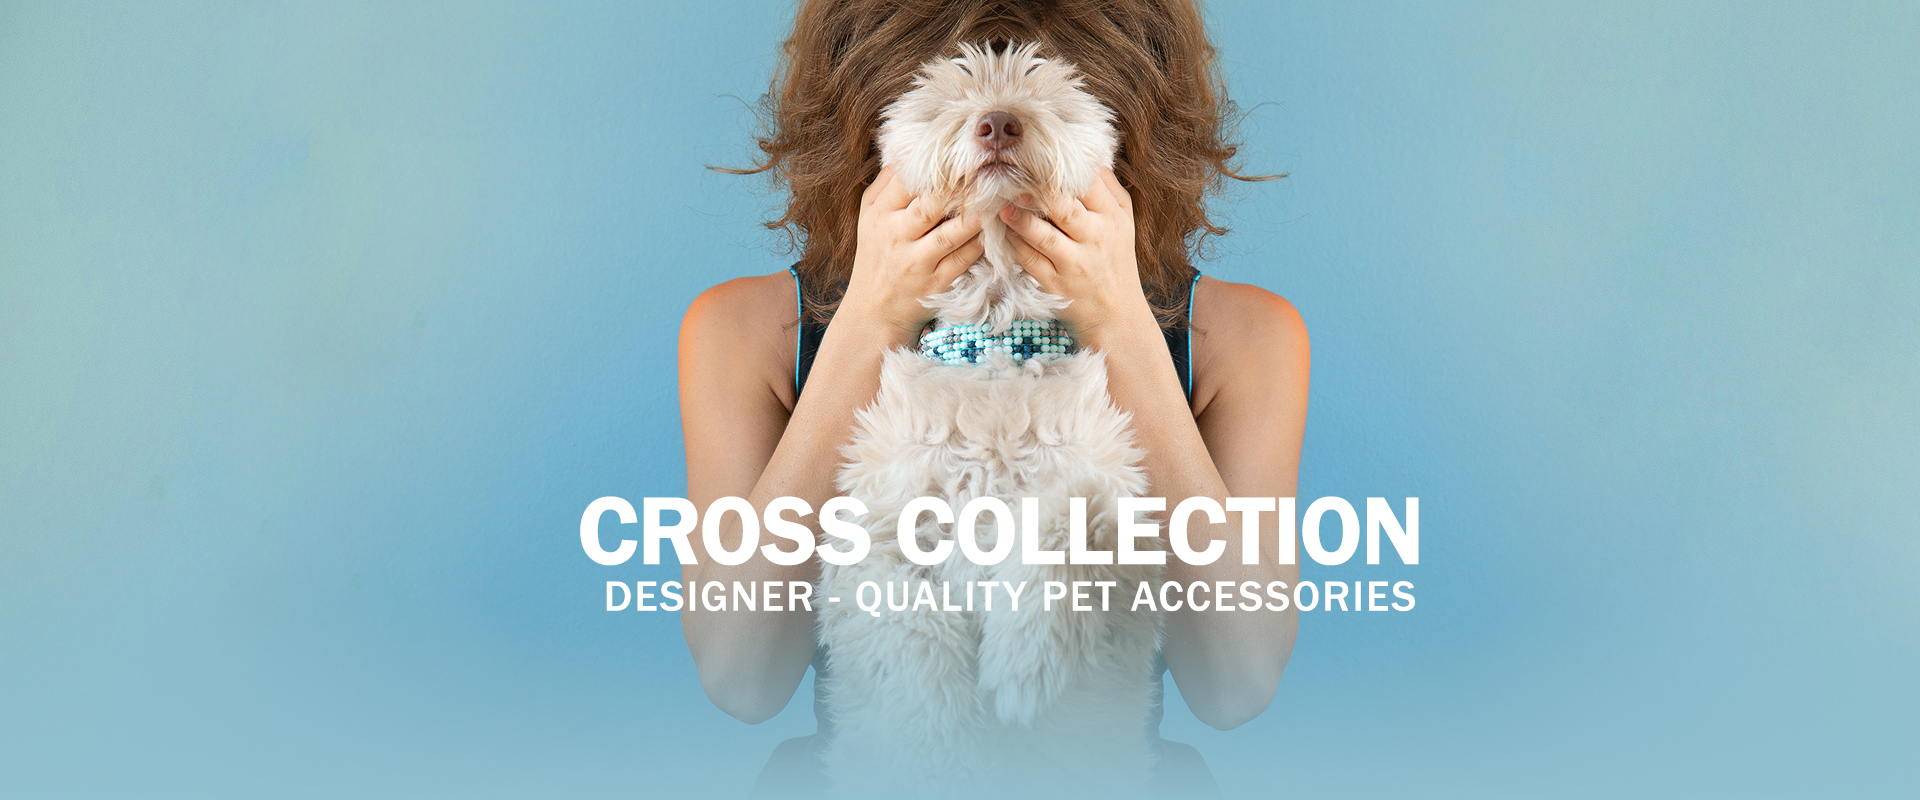 Cross Collection | Designer-quality pet accessories by zikos